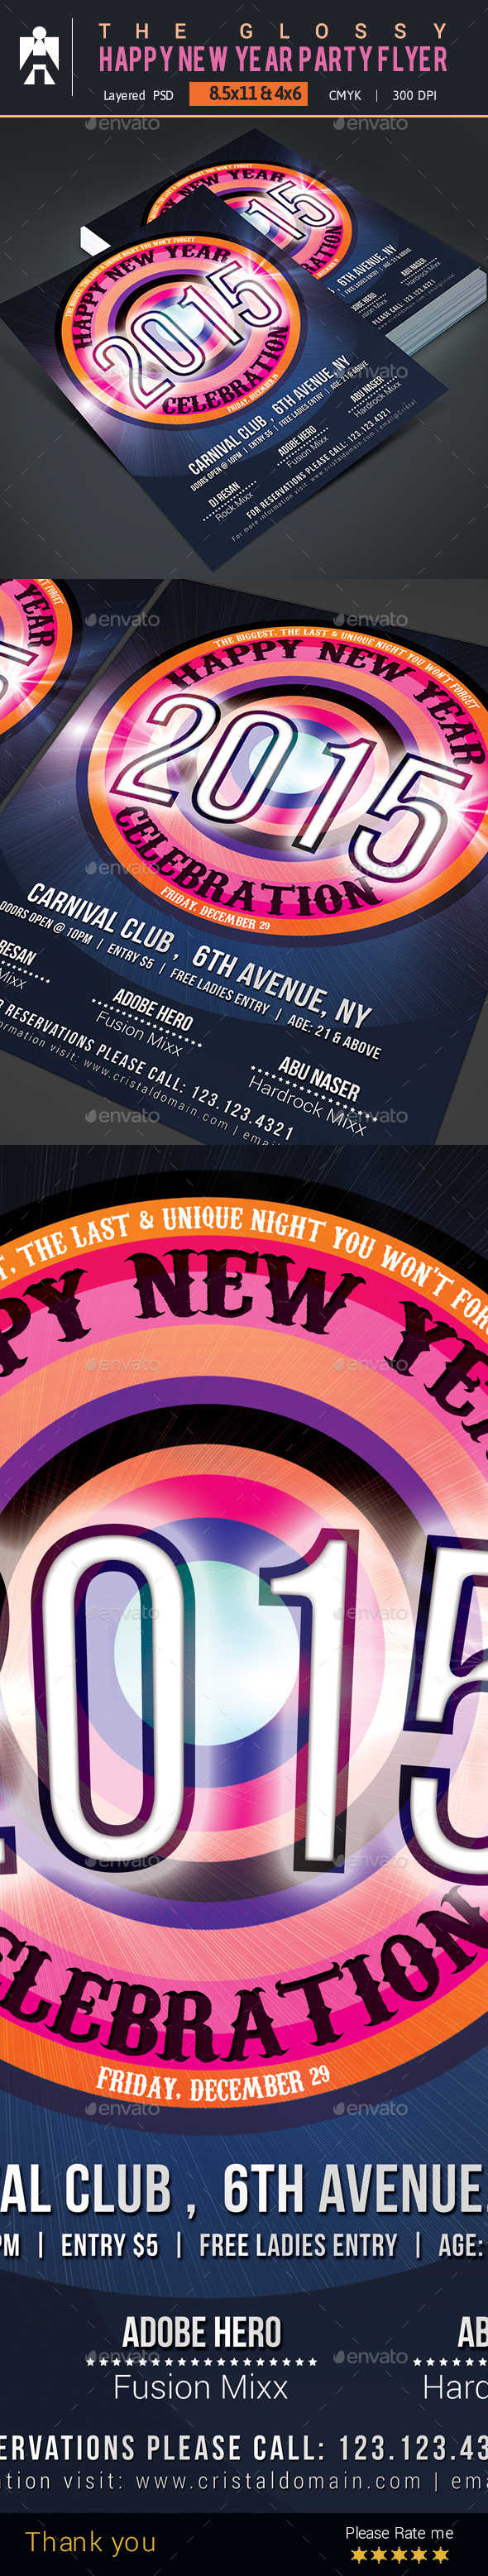 GraphicRiver Happy New Year Party Flyer 9657037